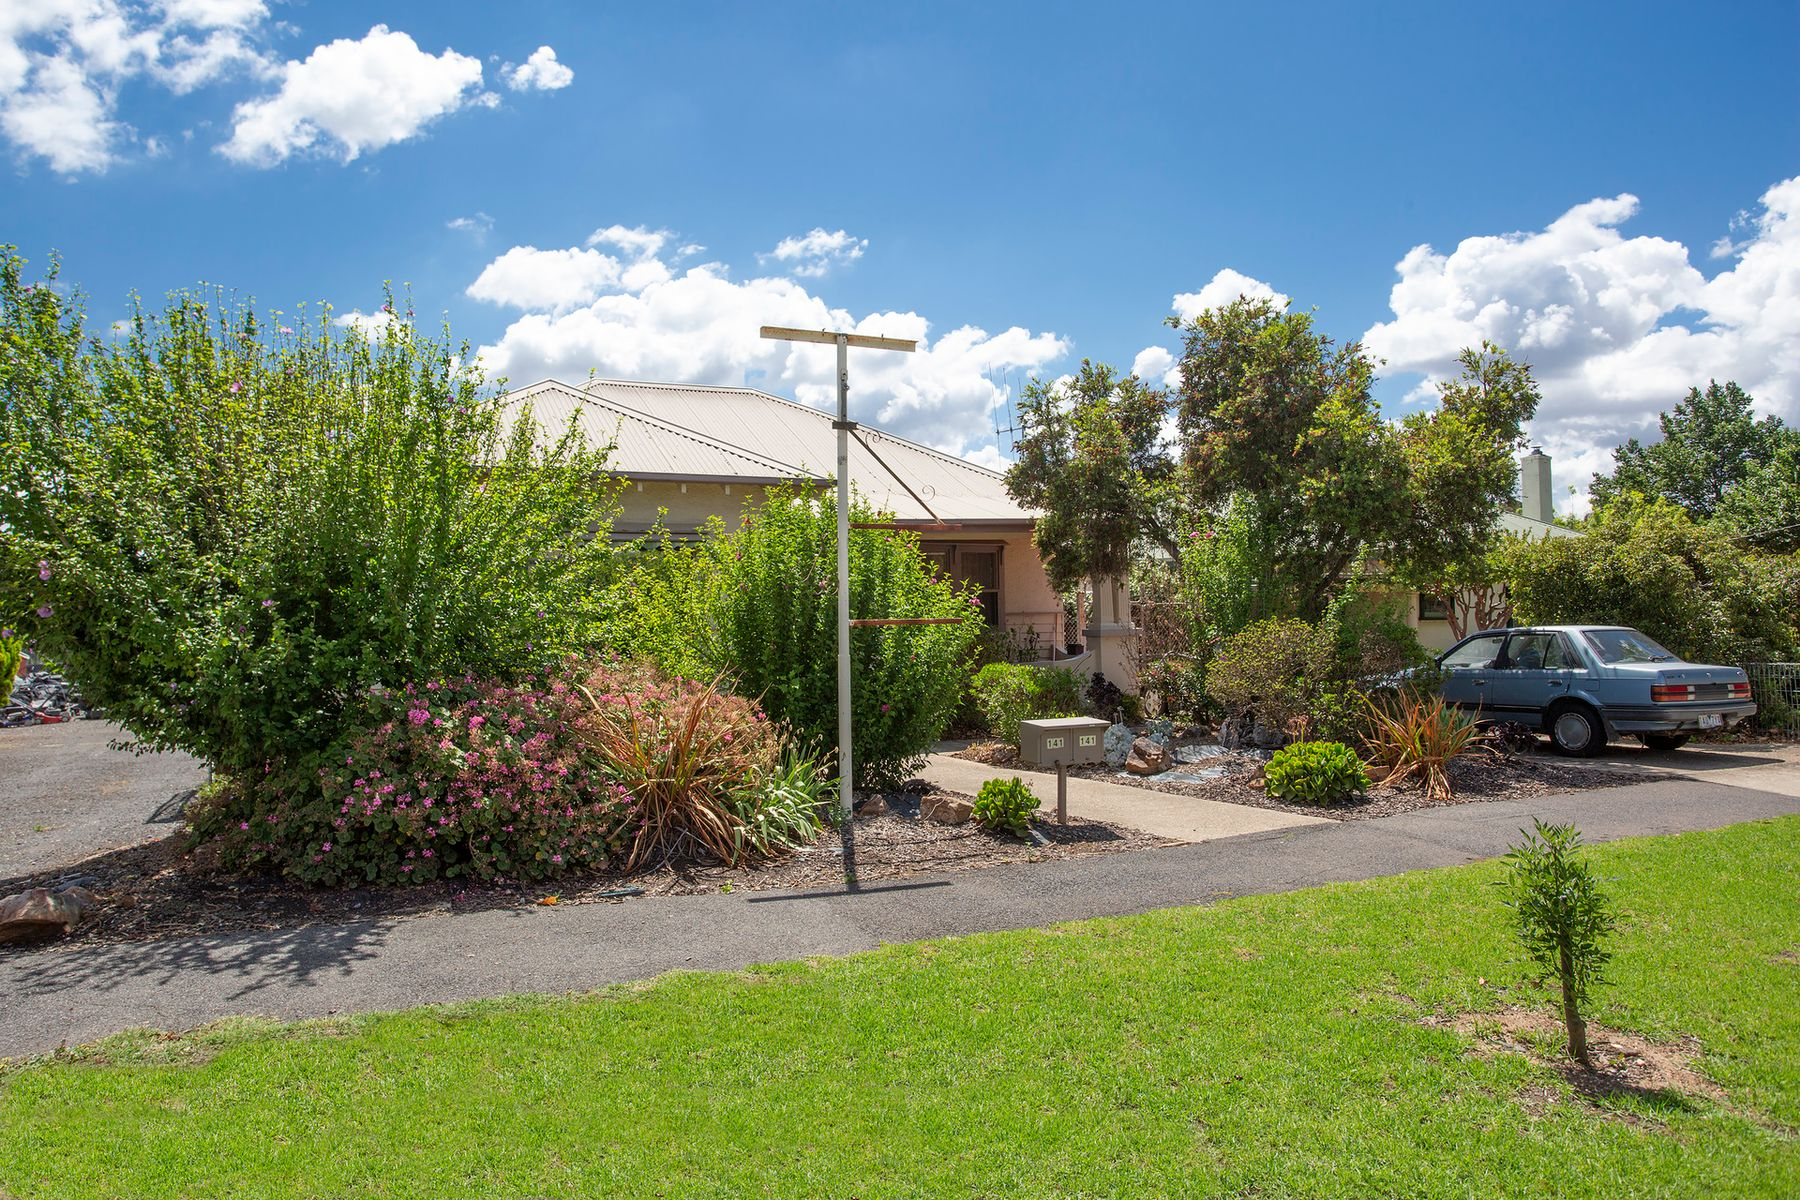 137 - 141 Williamson Street, Bendigo, VIC 3550